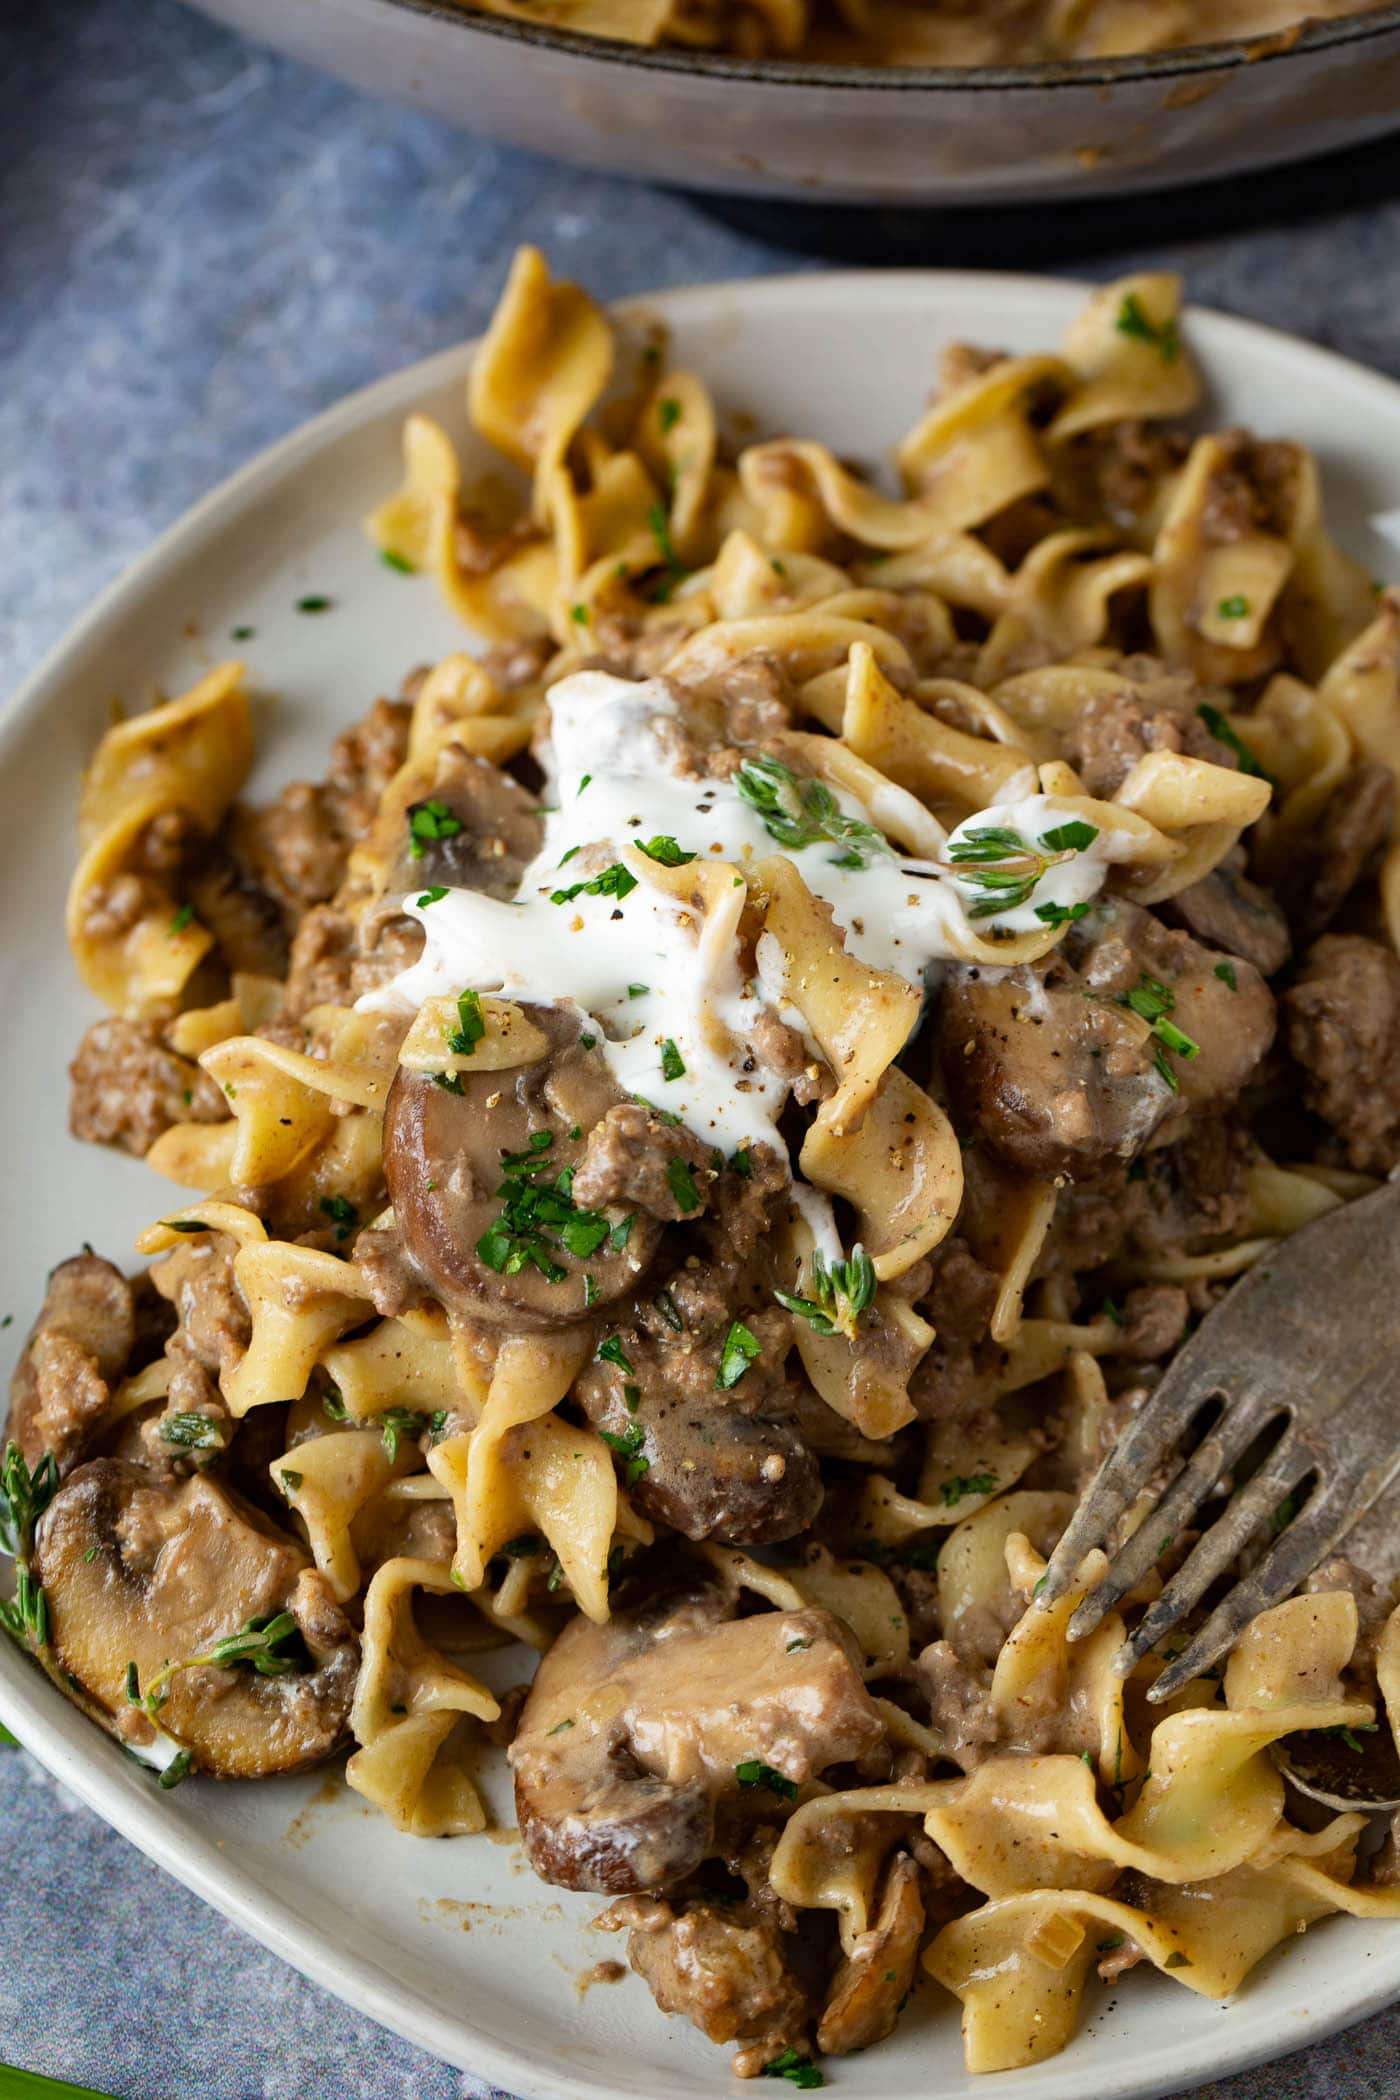 Ground beef stroganoff on a dinner plate. A fork rests on the plate next to the noodles and ground beef stroganoff with a spoonful of sour cream on top.